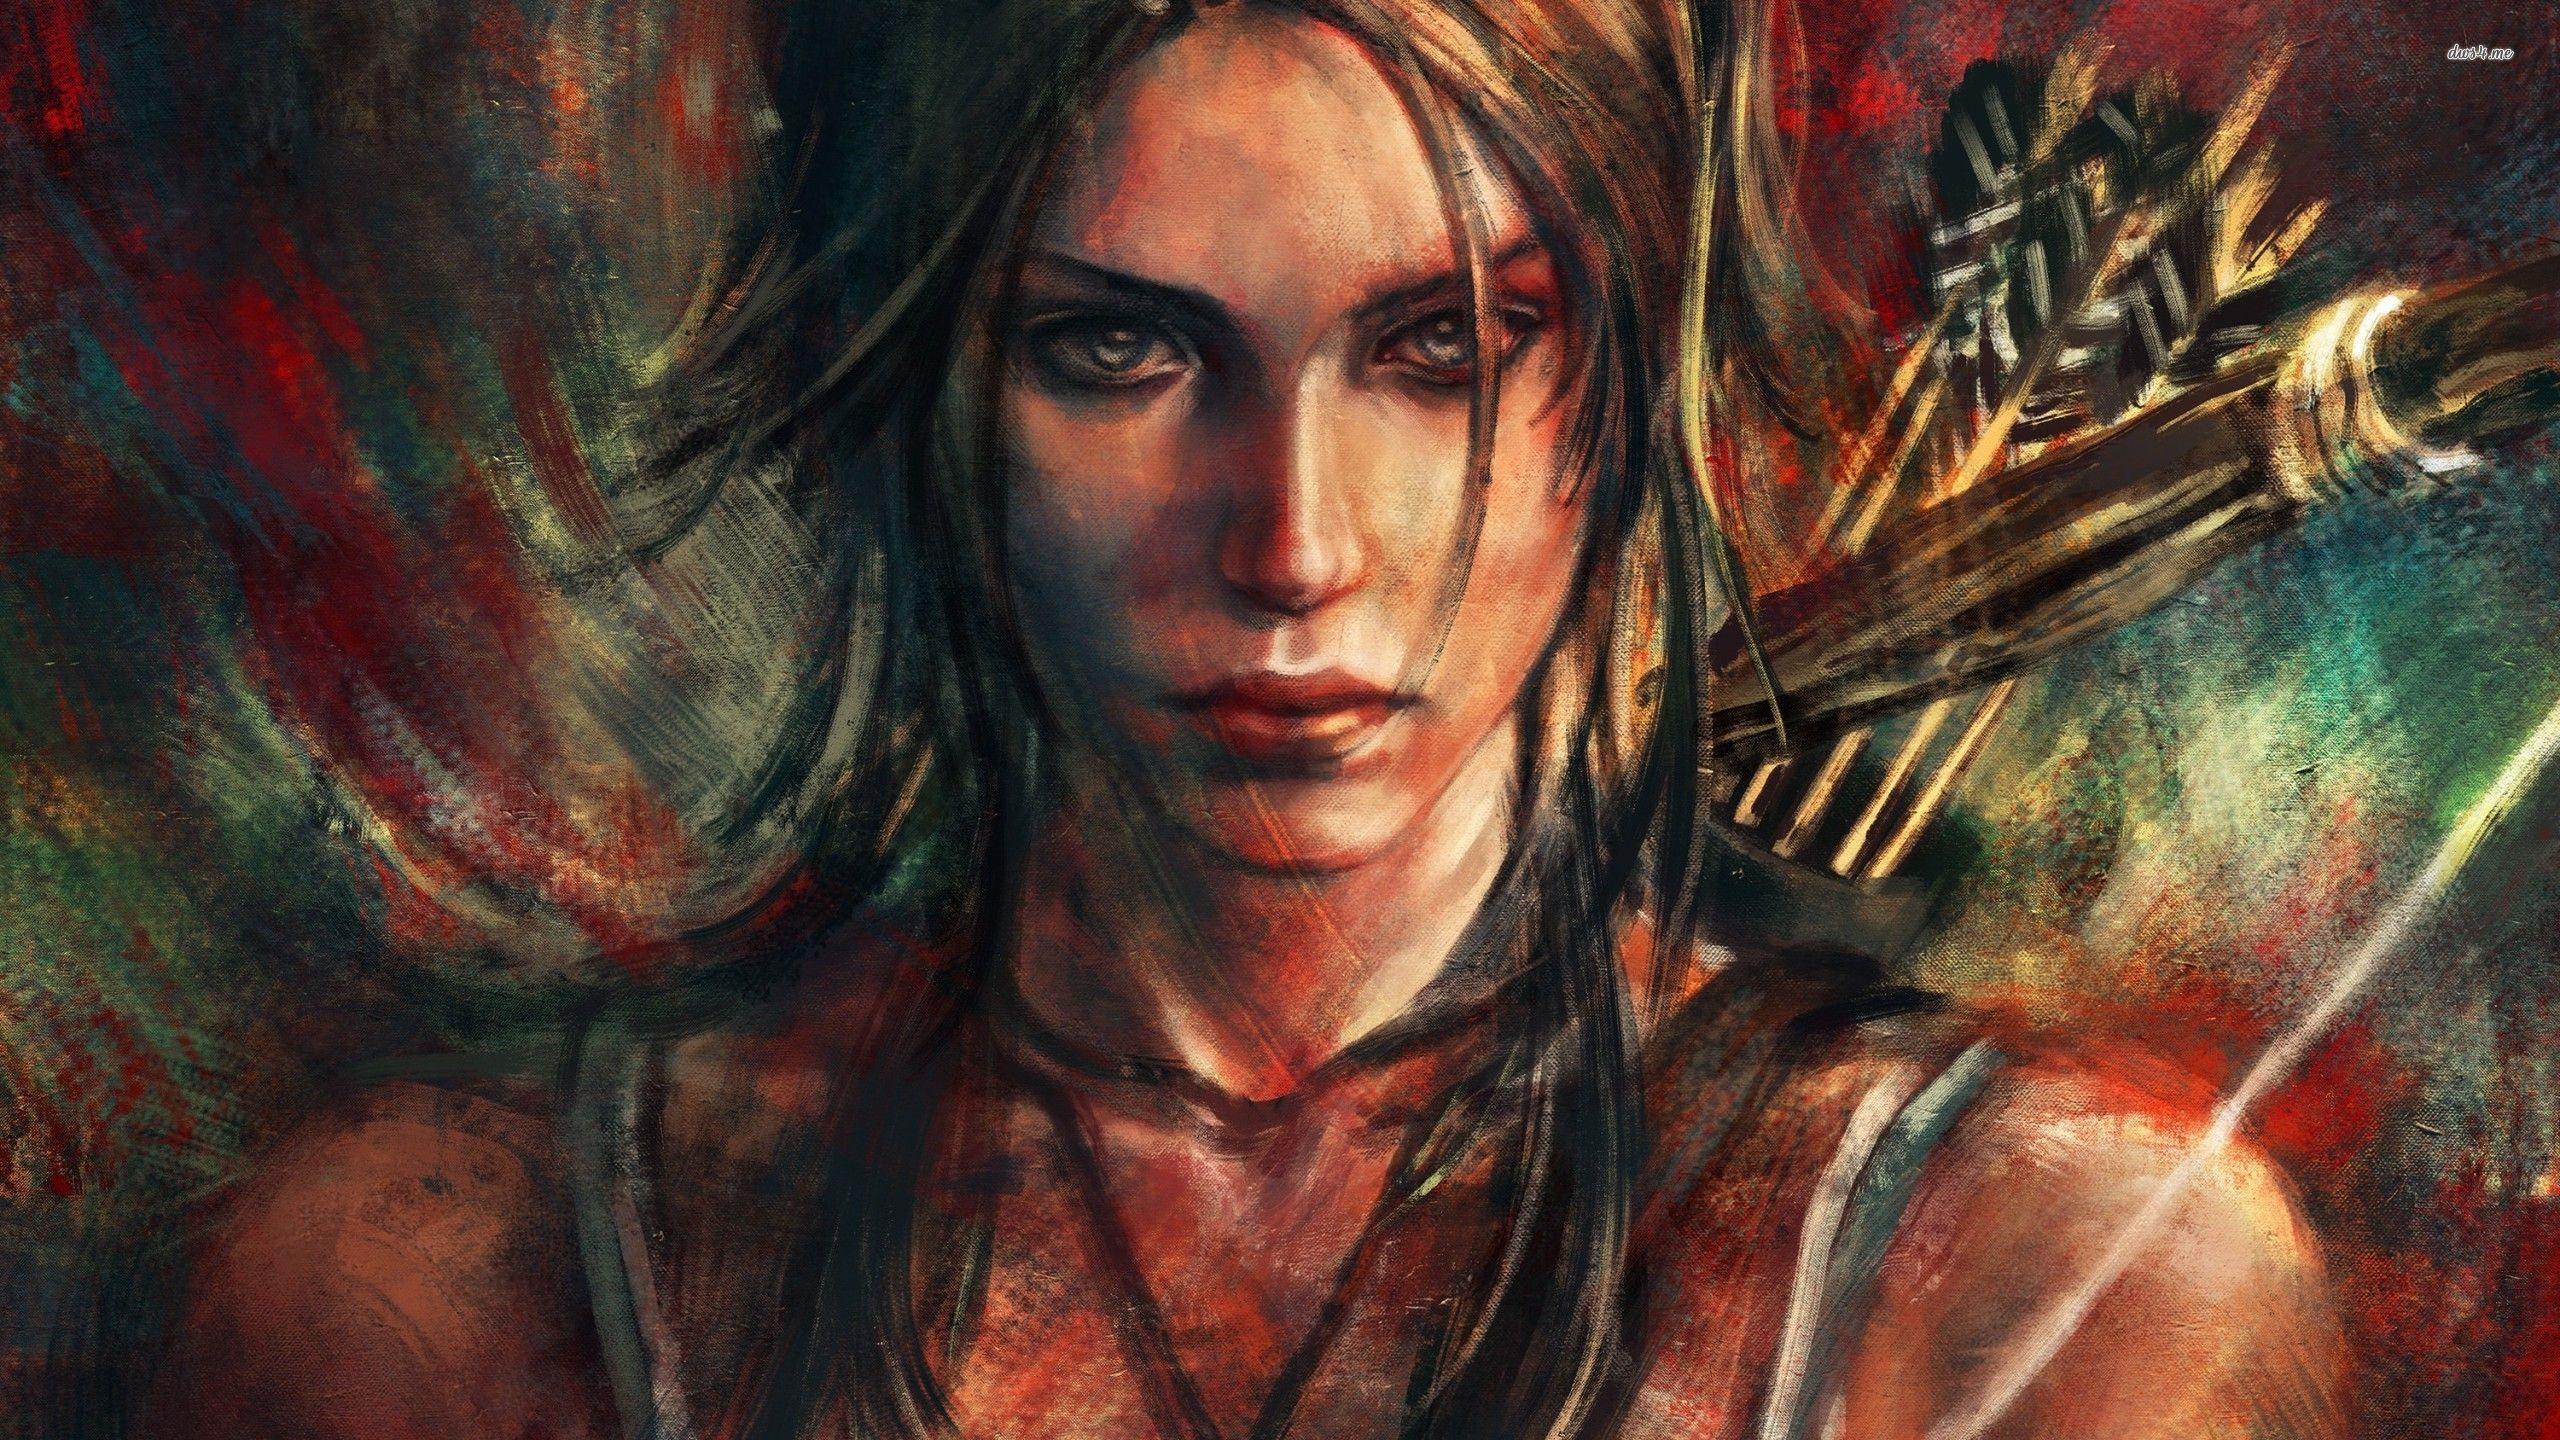 Lara croft painting